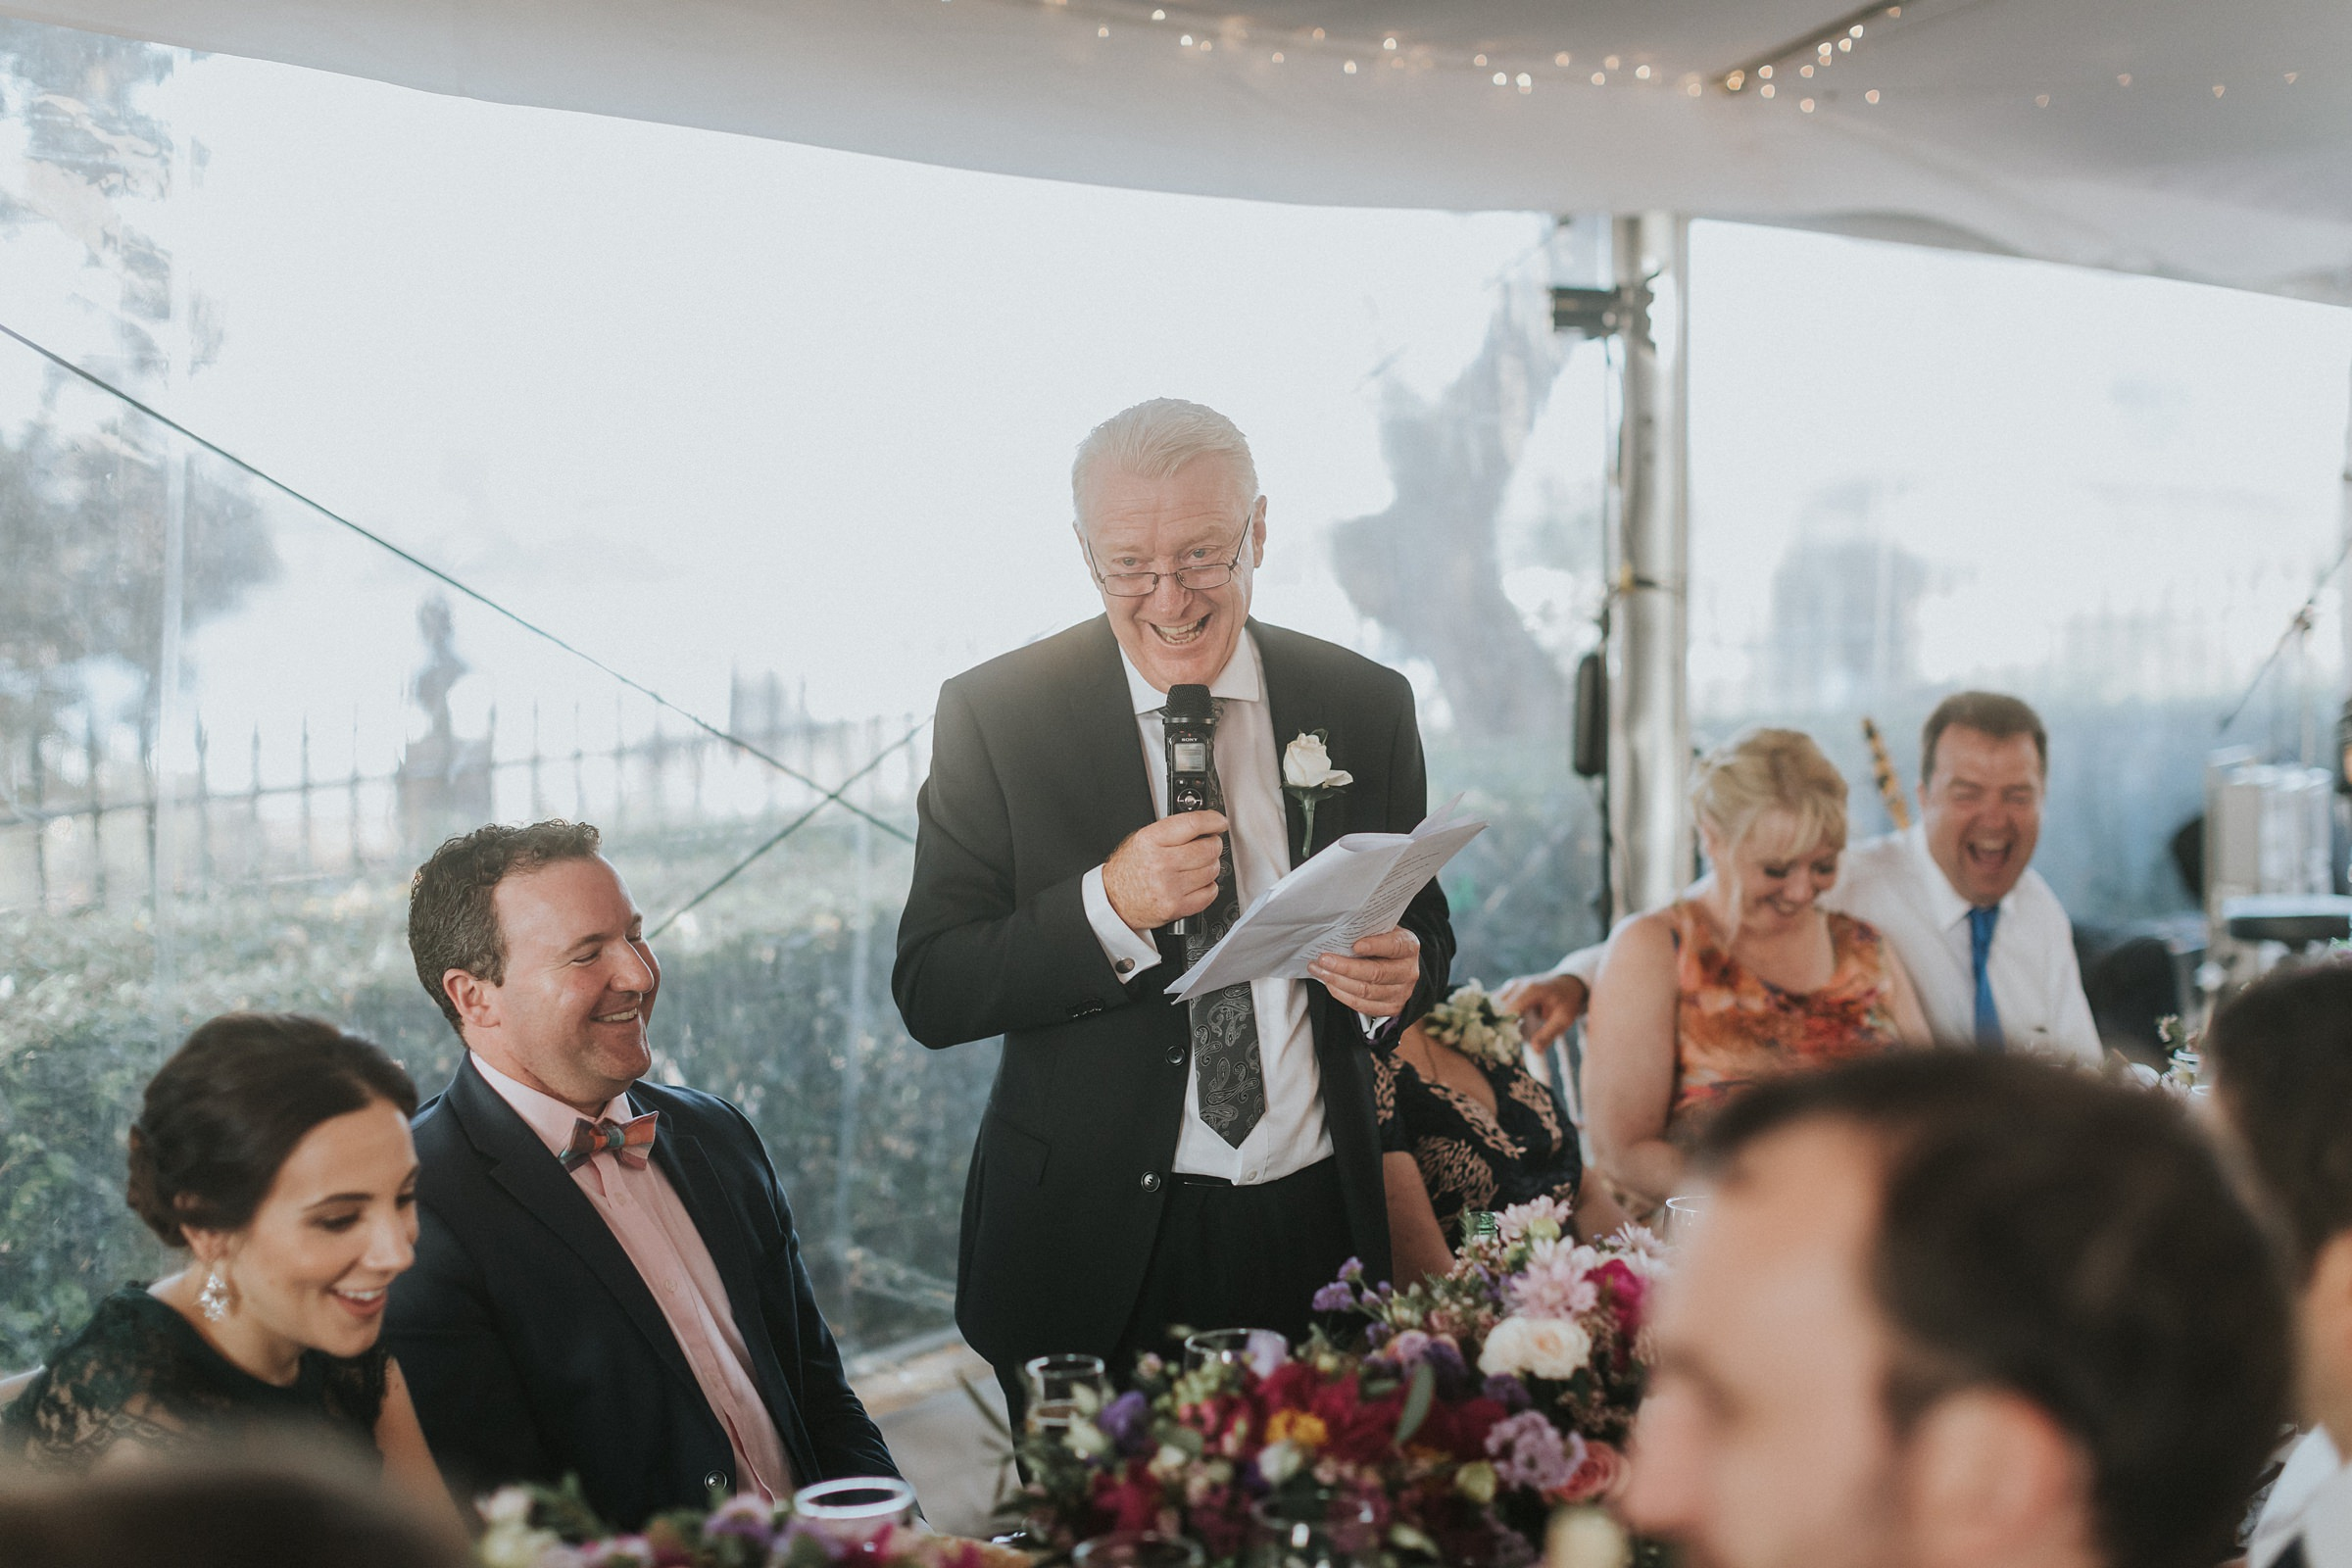 father of the bride speaks at wedding reception in sydney